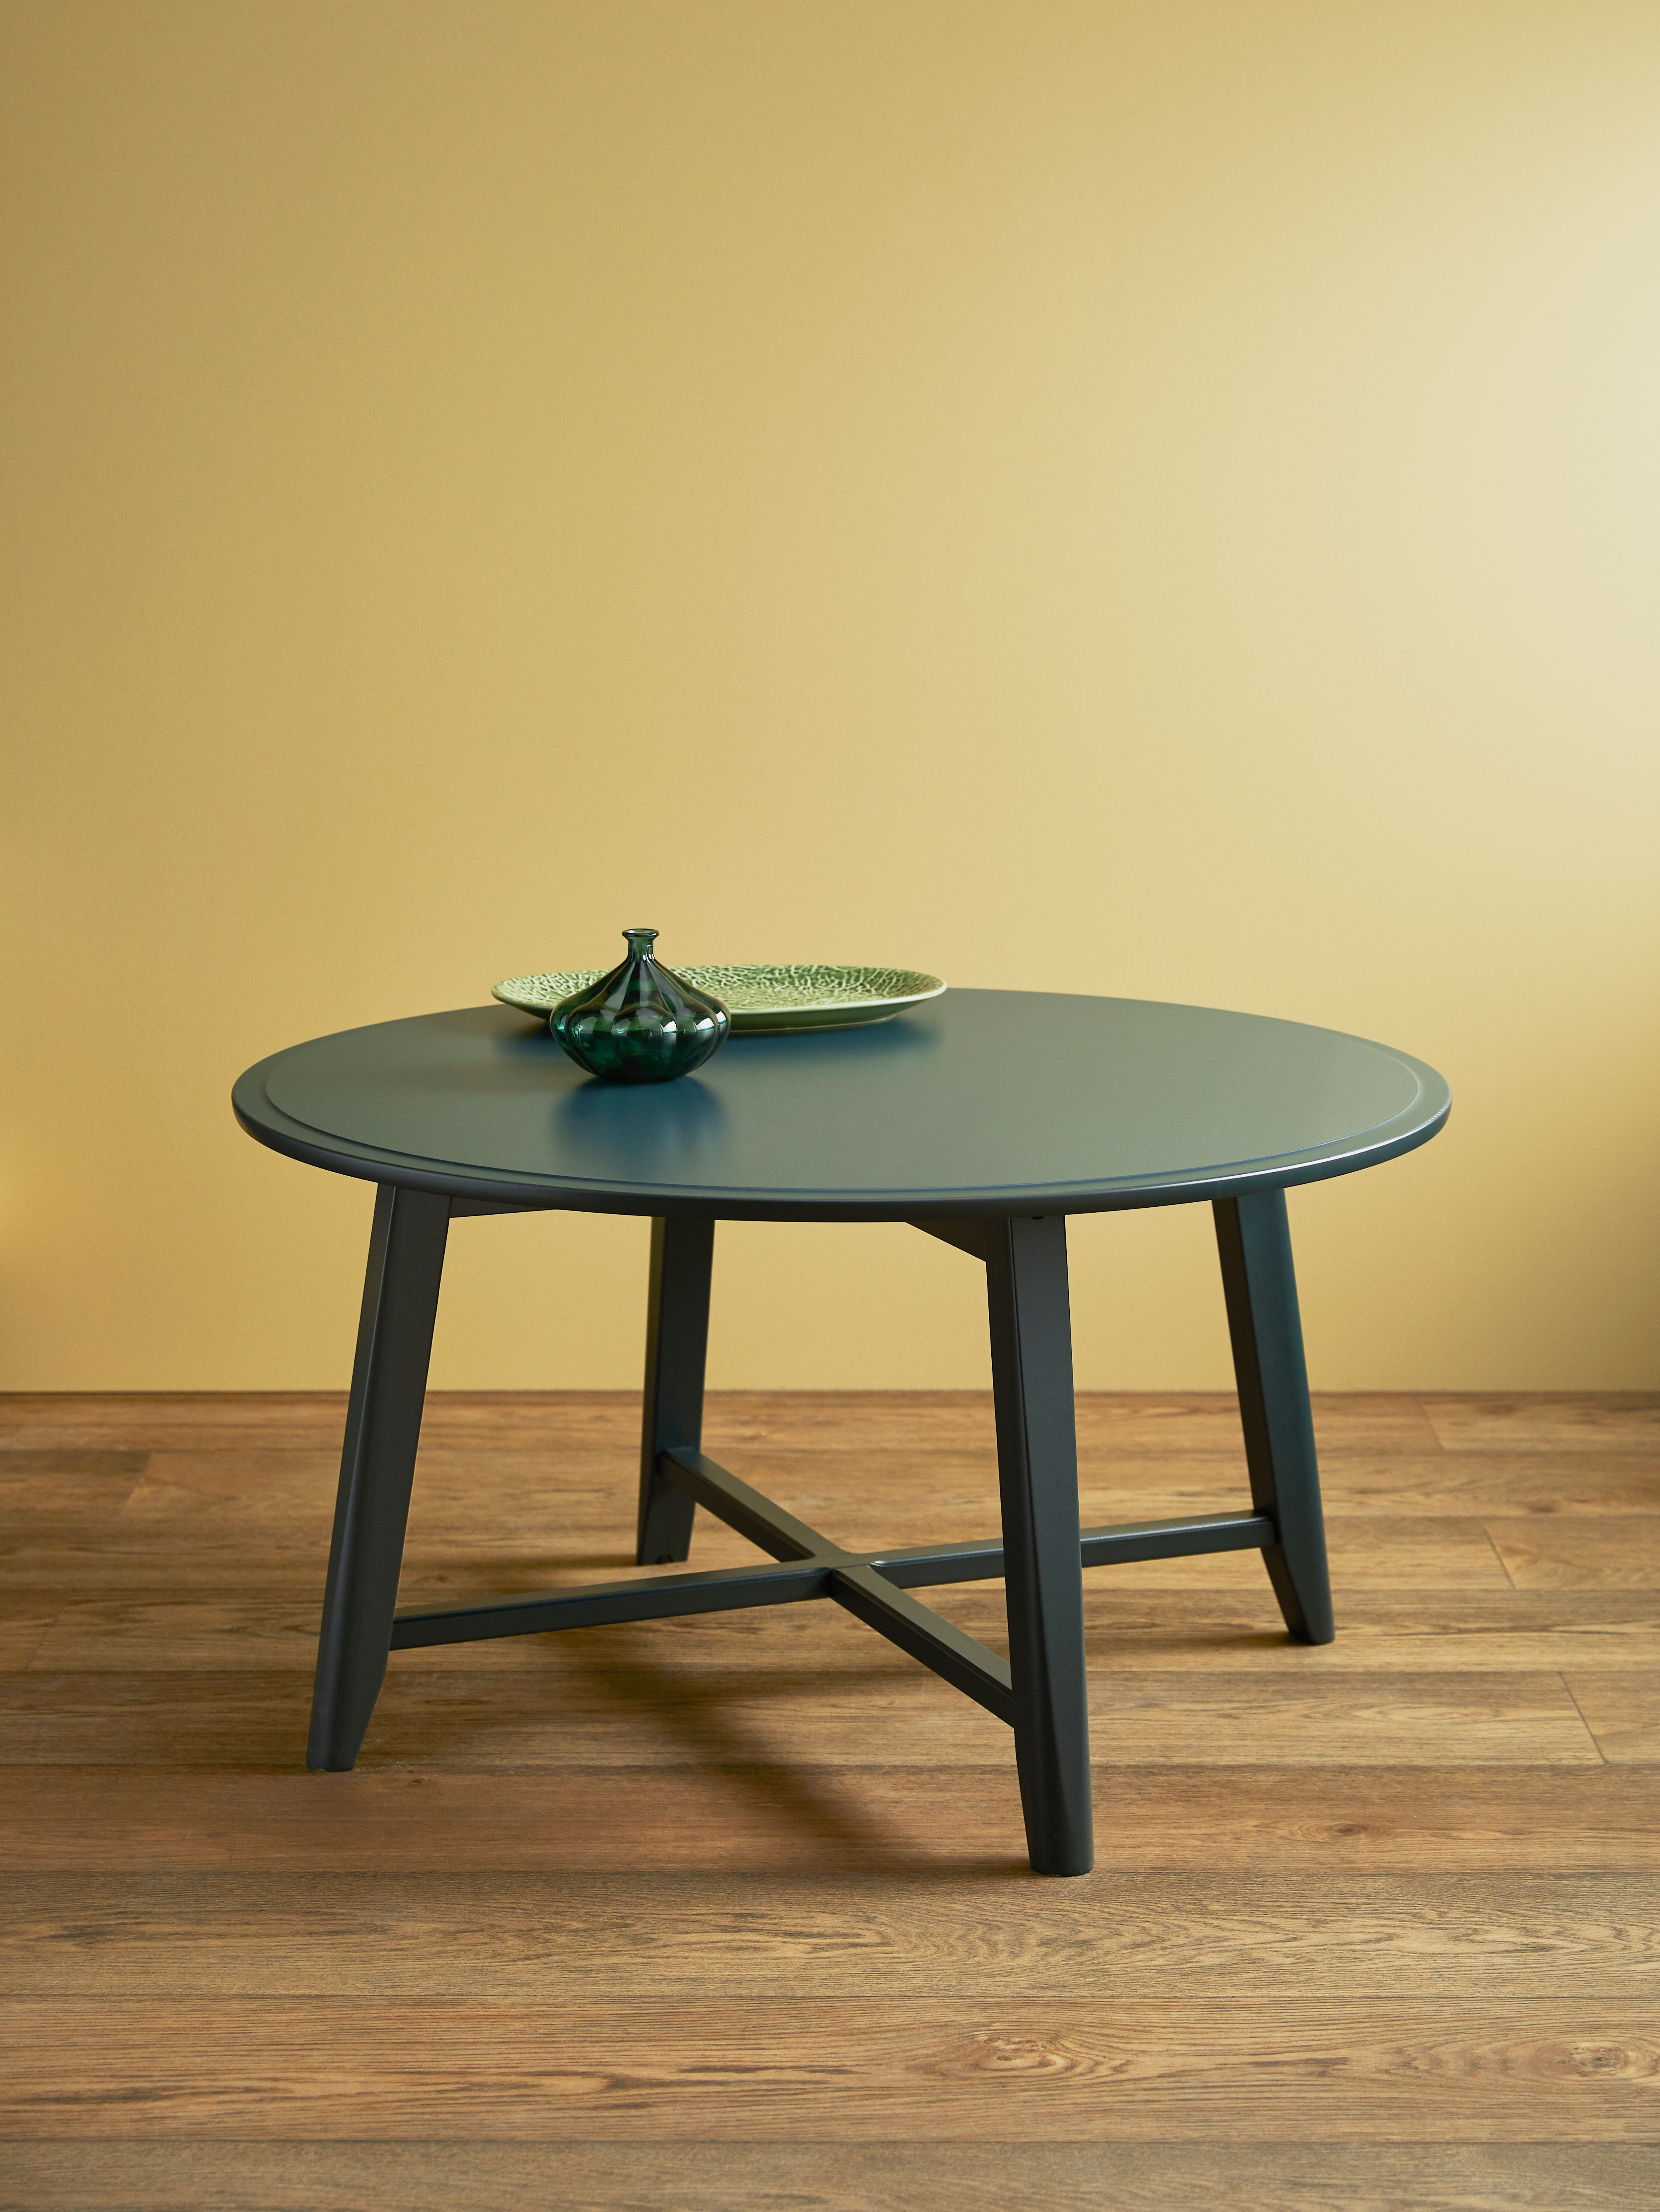 A round, dark blue-green KRAGSTA coffee table stands on a wooden floor by a yellow wall. A green vase and plate sit on top.